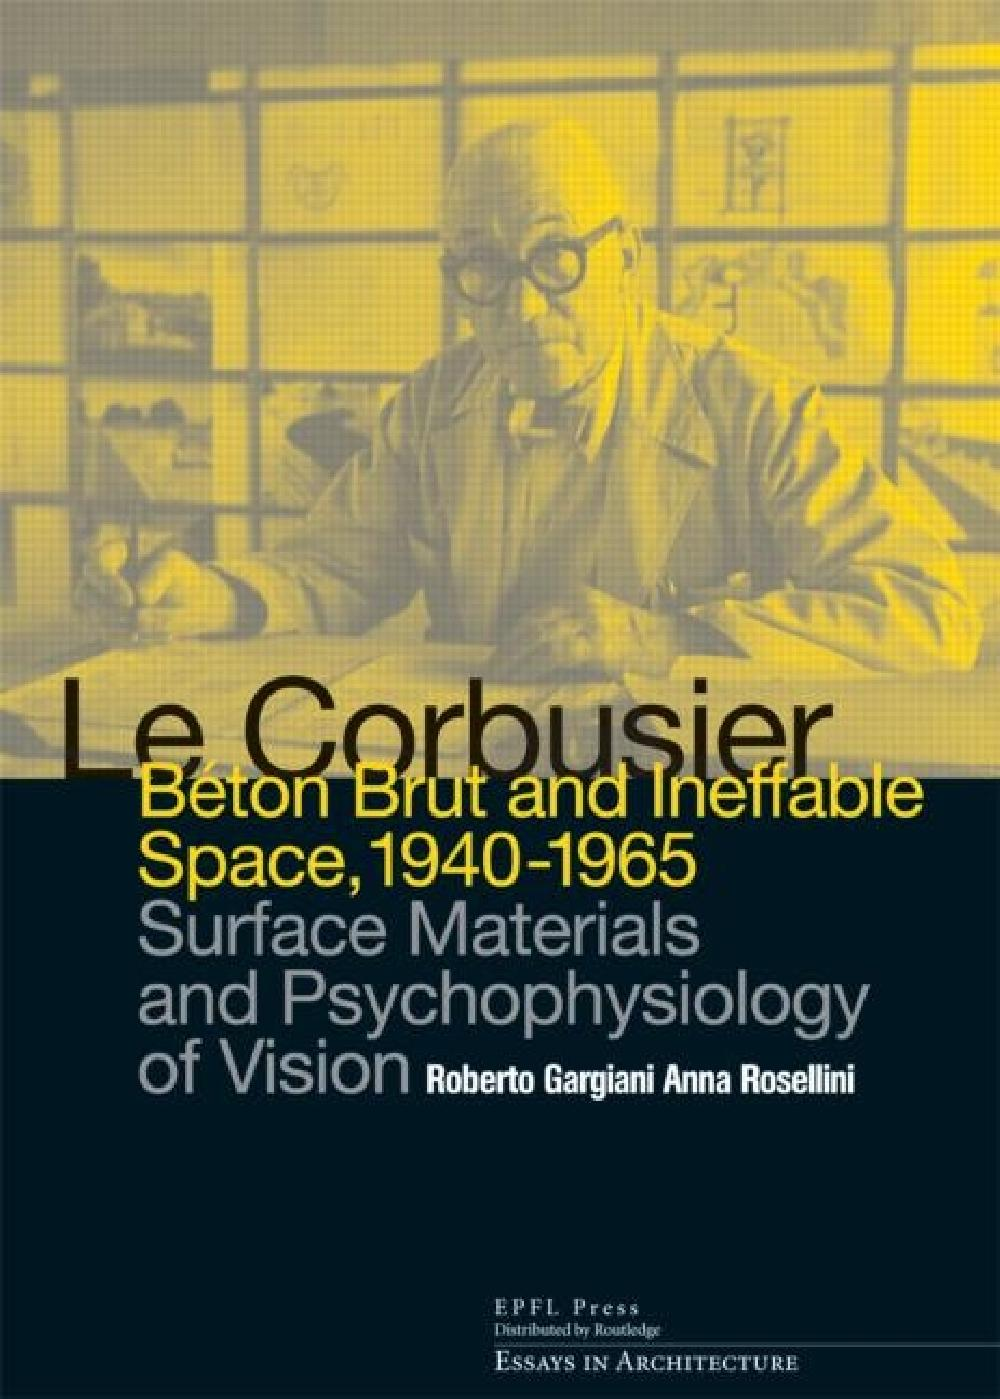 Le Corbusier: Beton brut and Ineffable Space 1940-1965